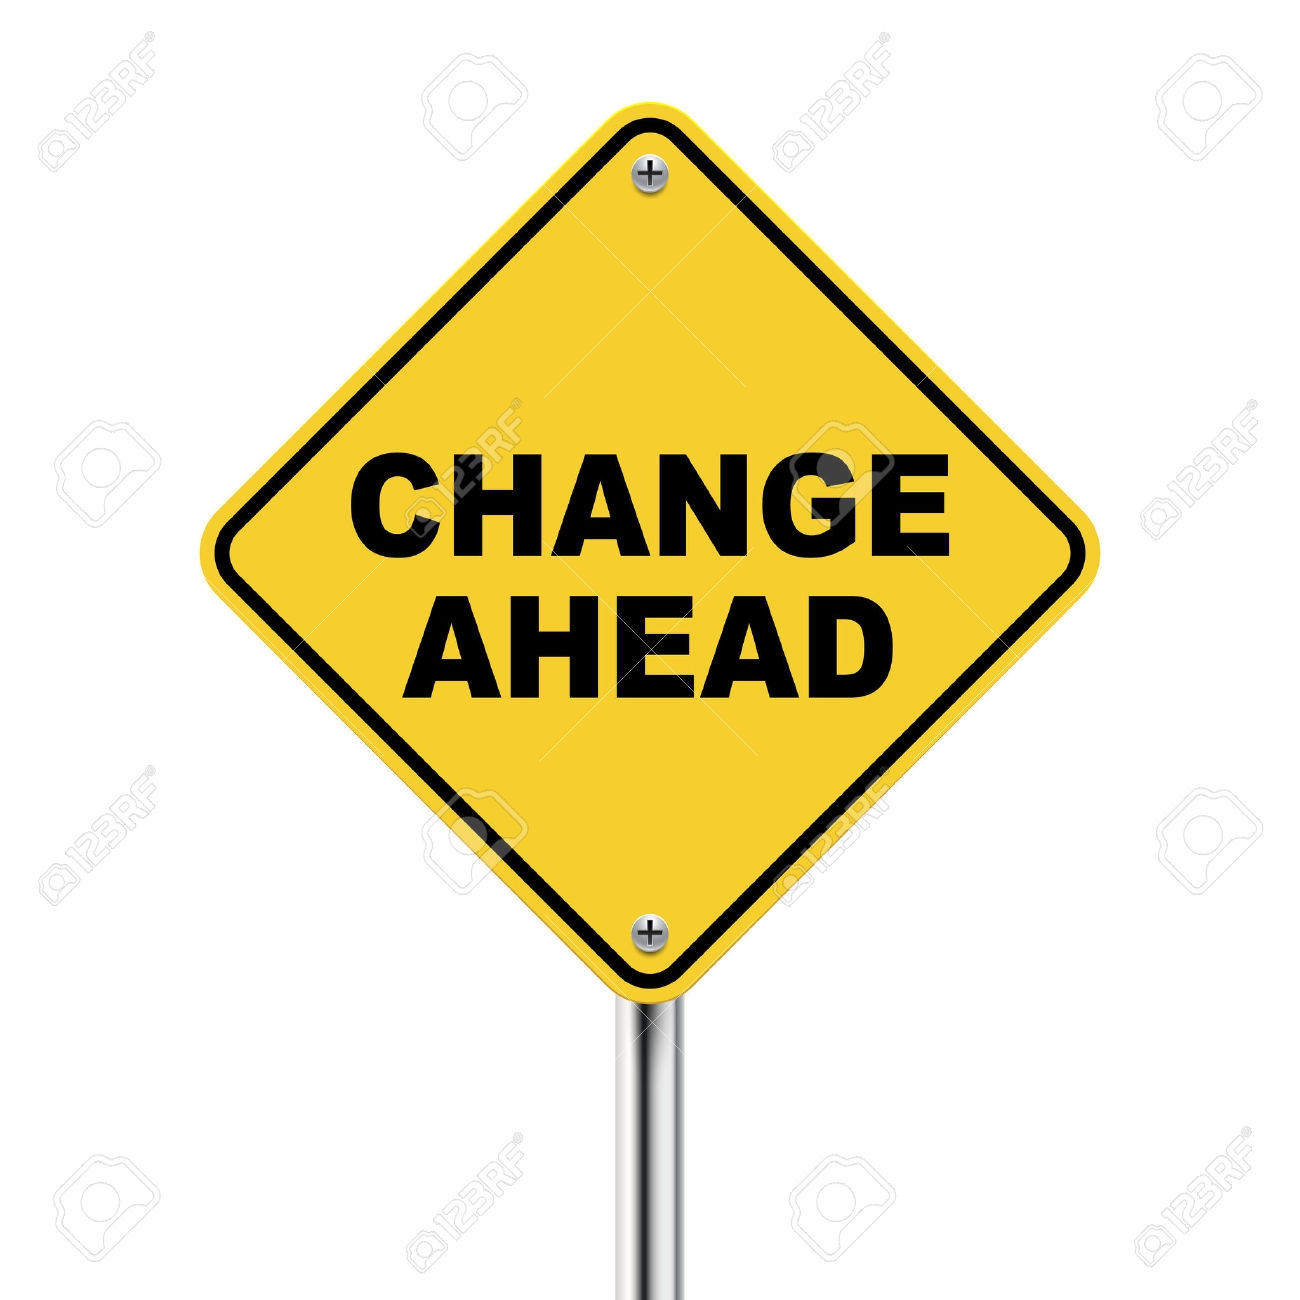 Change clipart ahead. Unique collection digital e